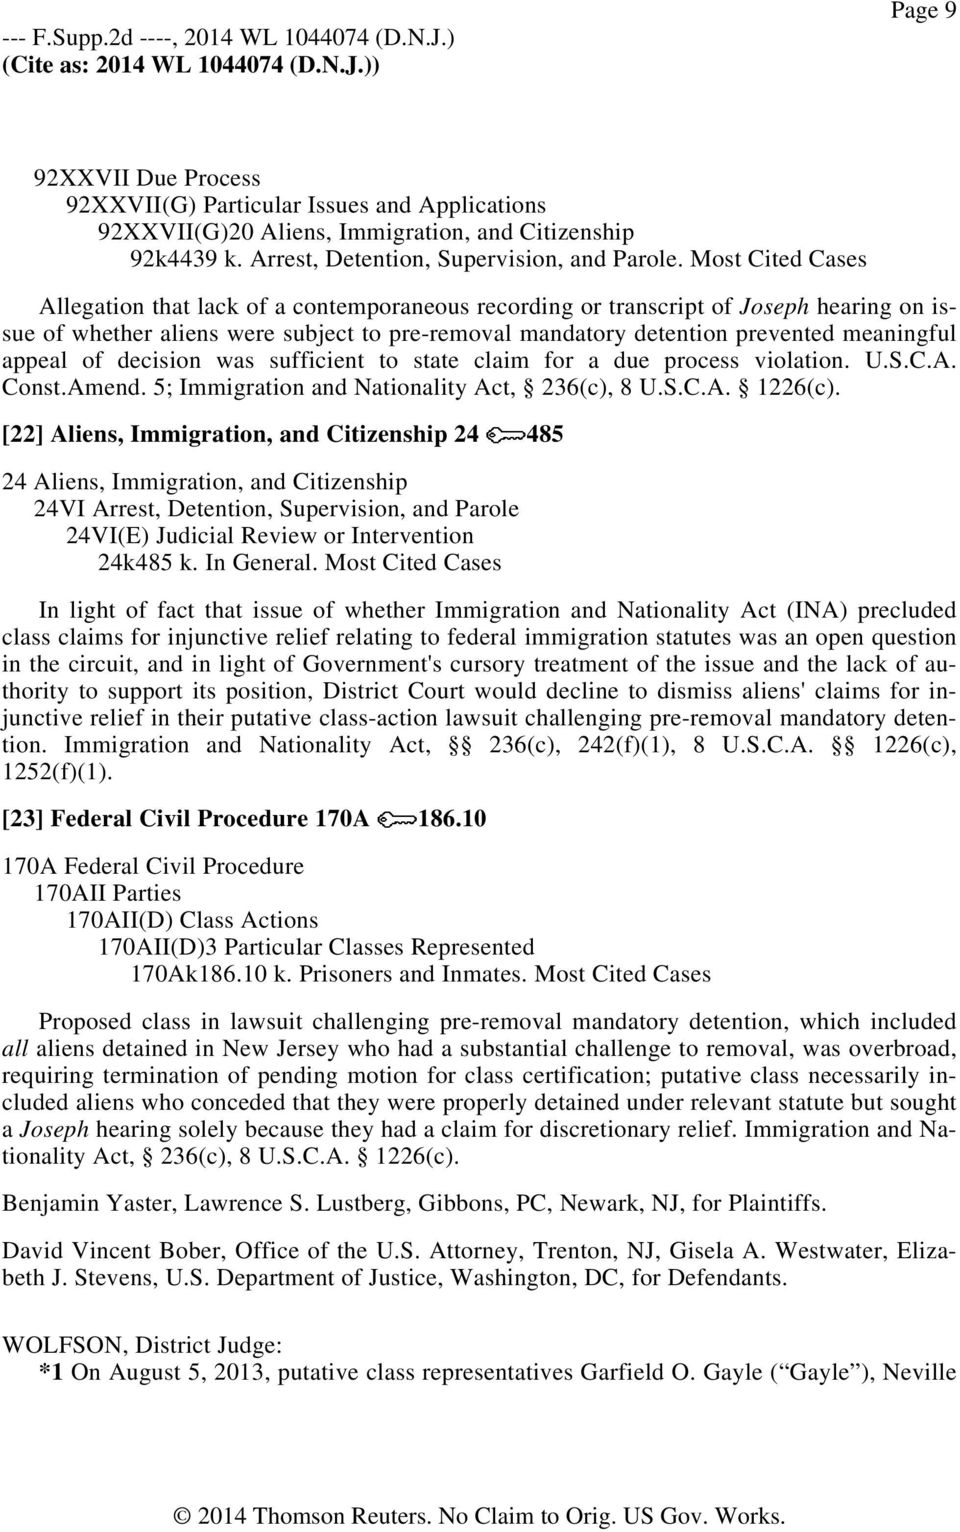 appeal of decision was sufficient to state claim for a due process violation. U.S.C.A. Const.Amend. 5; Immigration and Nationality Act, 236(c), 8 U.S.C.A. 1226(c).